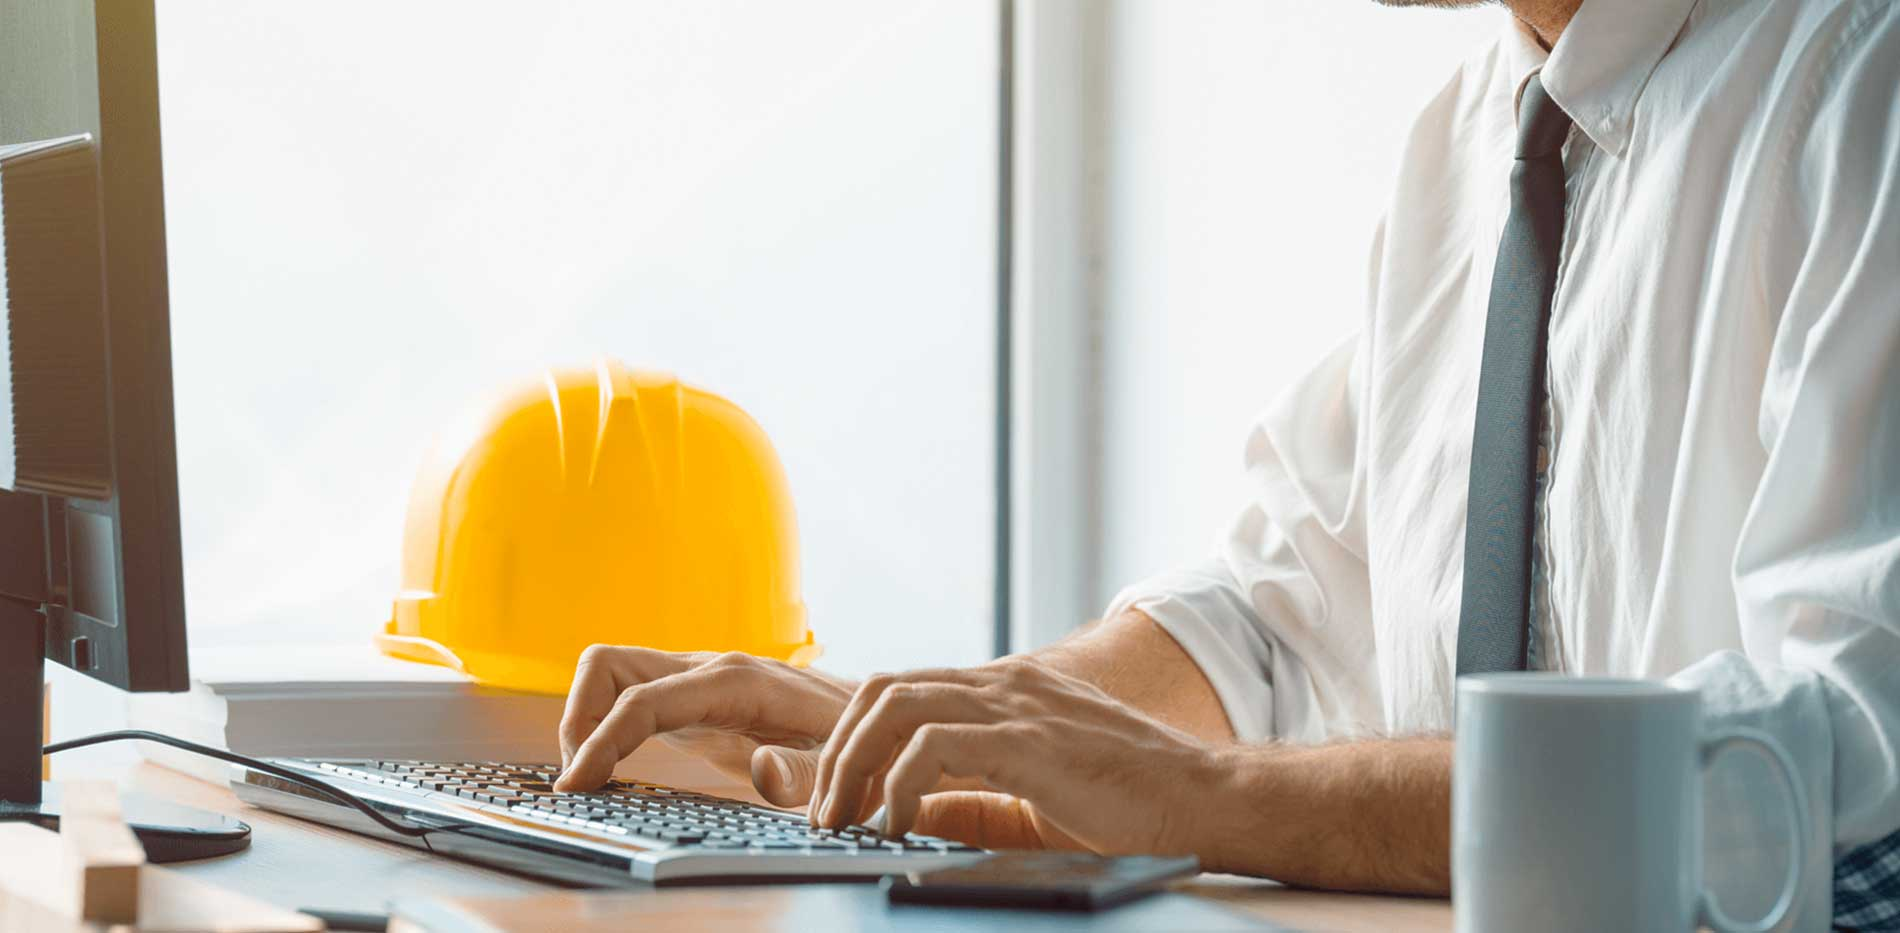 Man working at desk with hard hat next to him